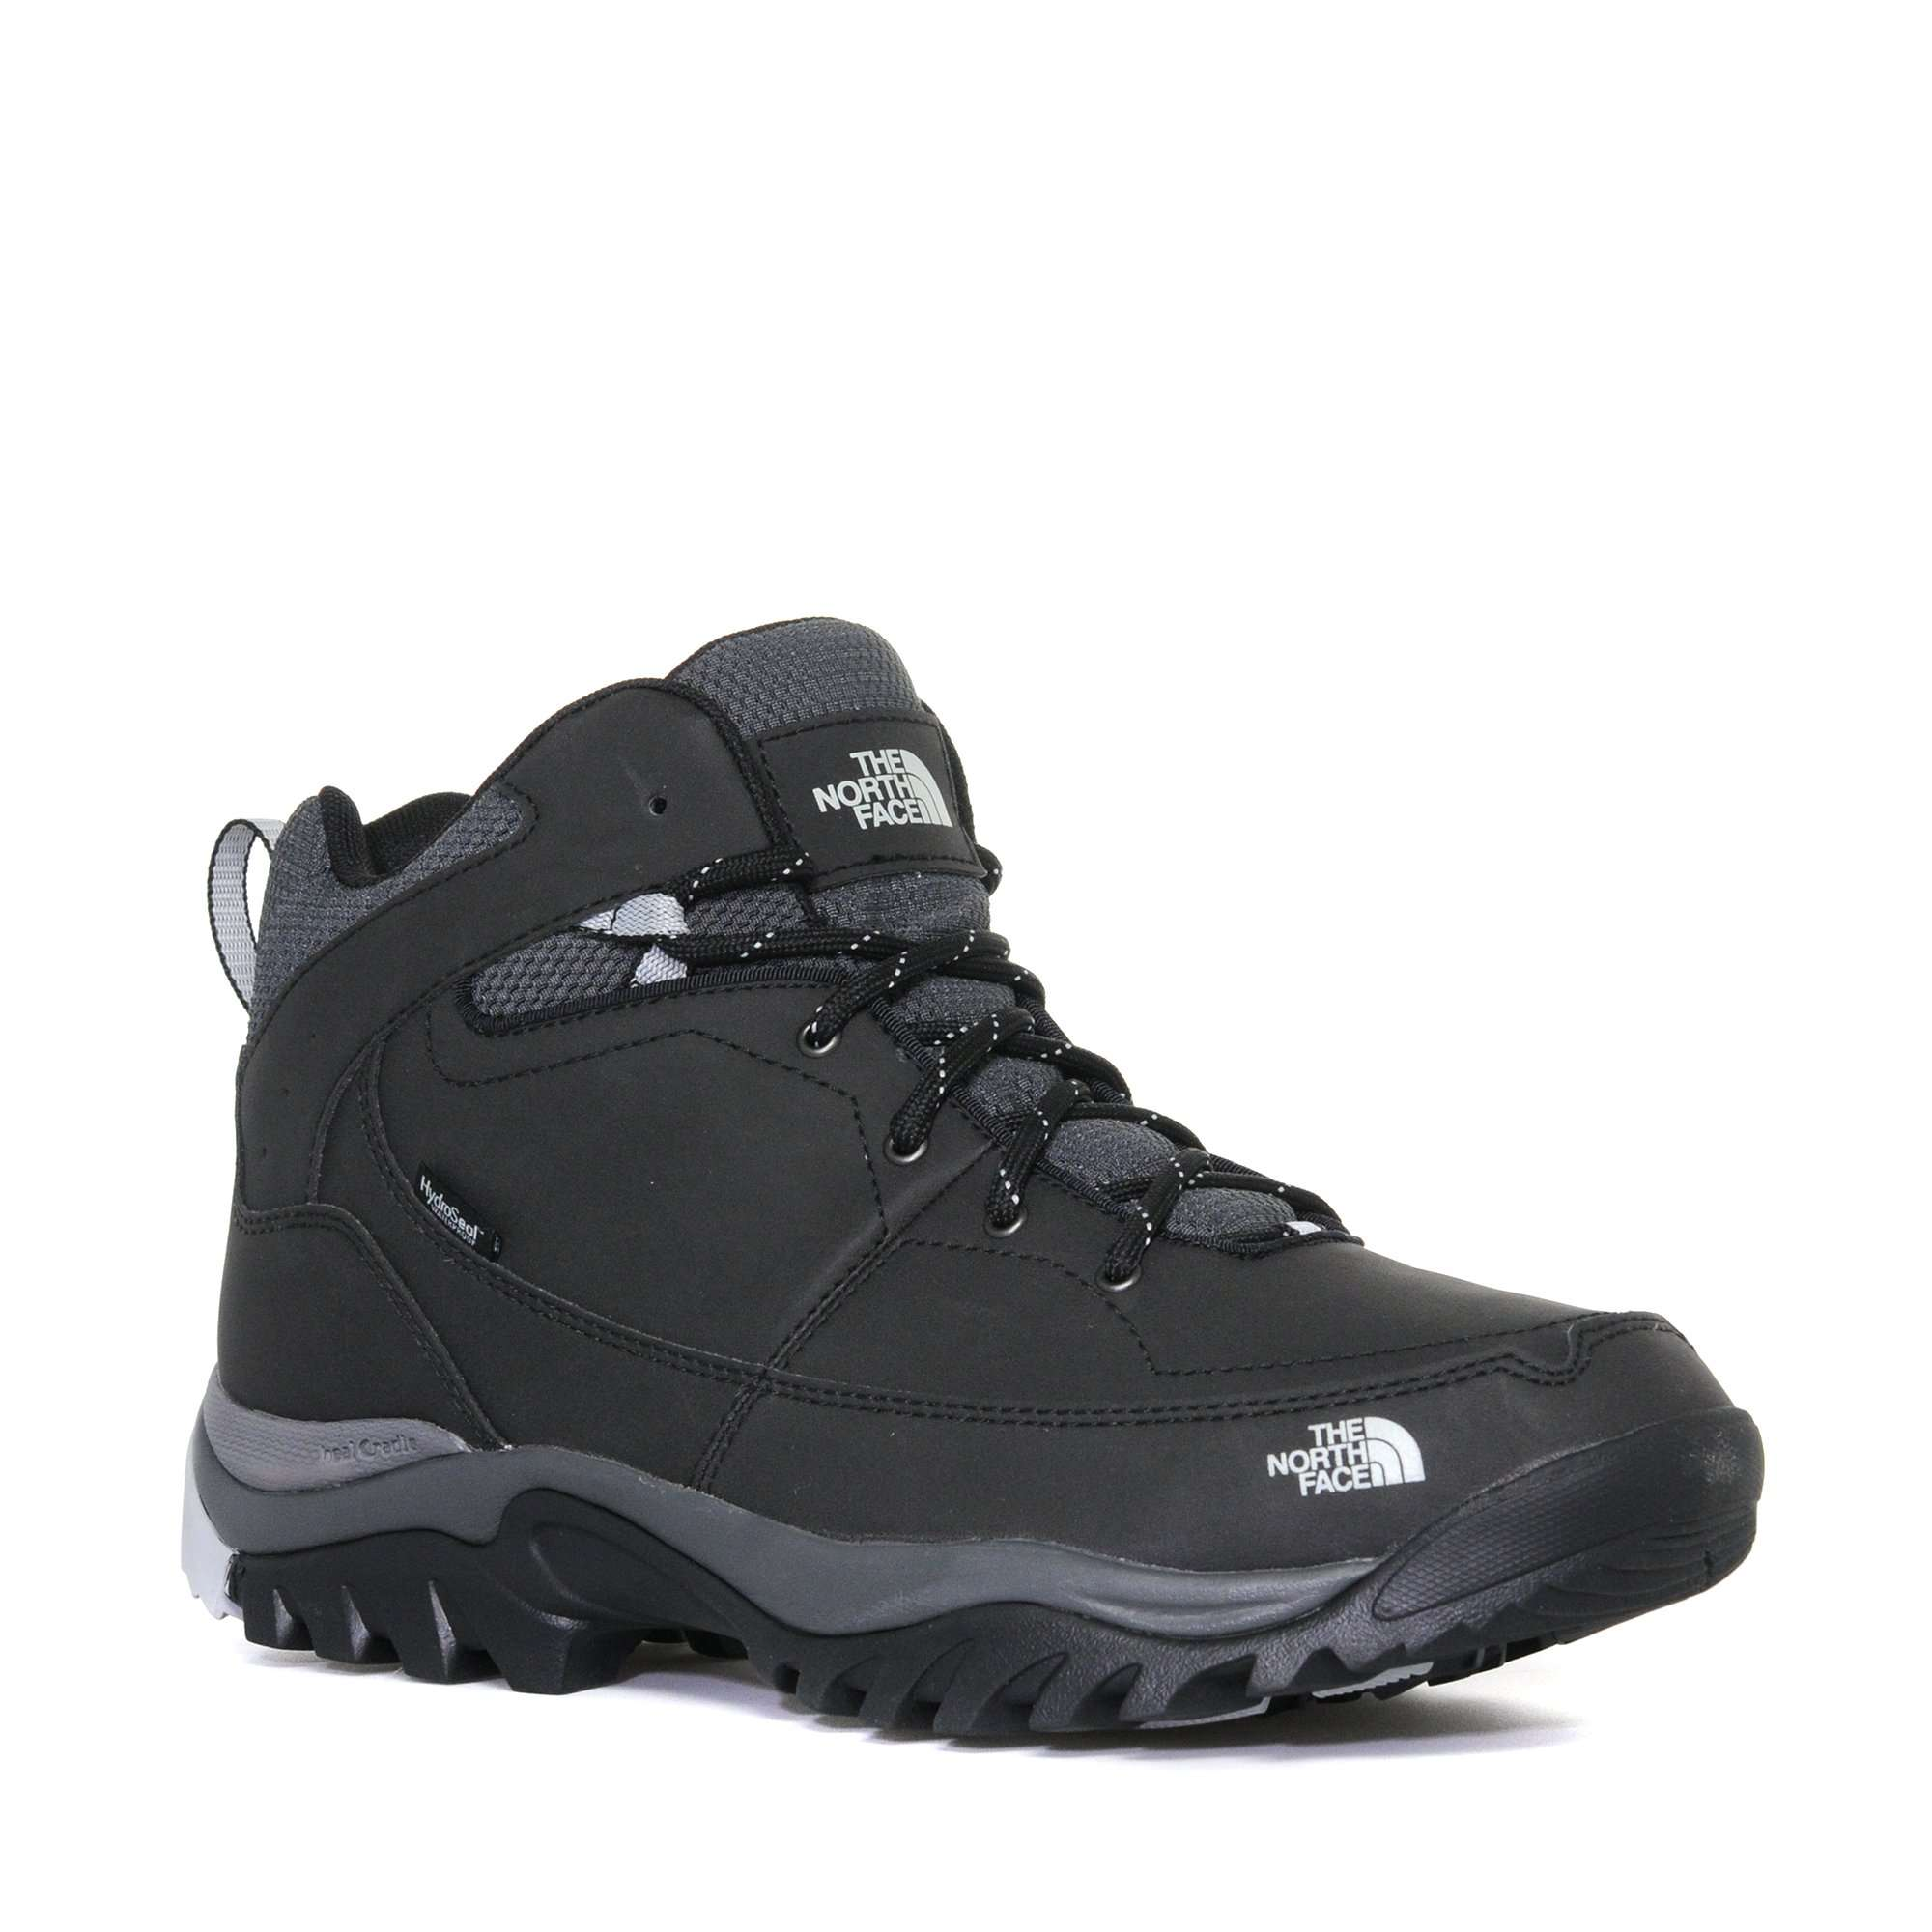 THE NORTH FACE Men's Snowstrike II Snow Boot